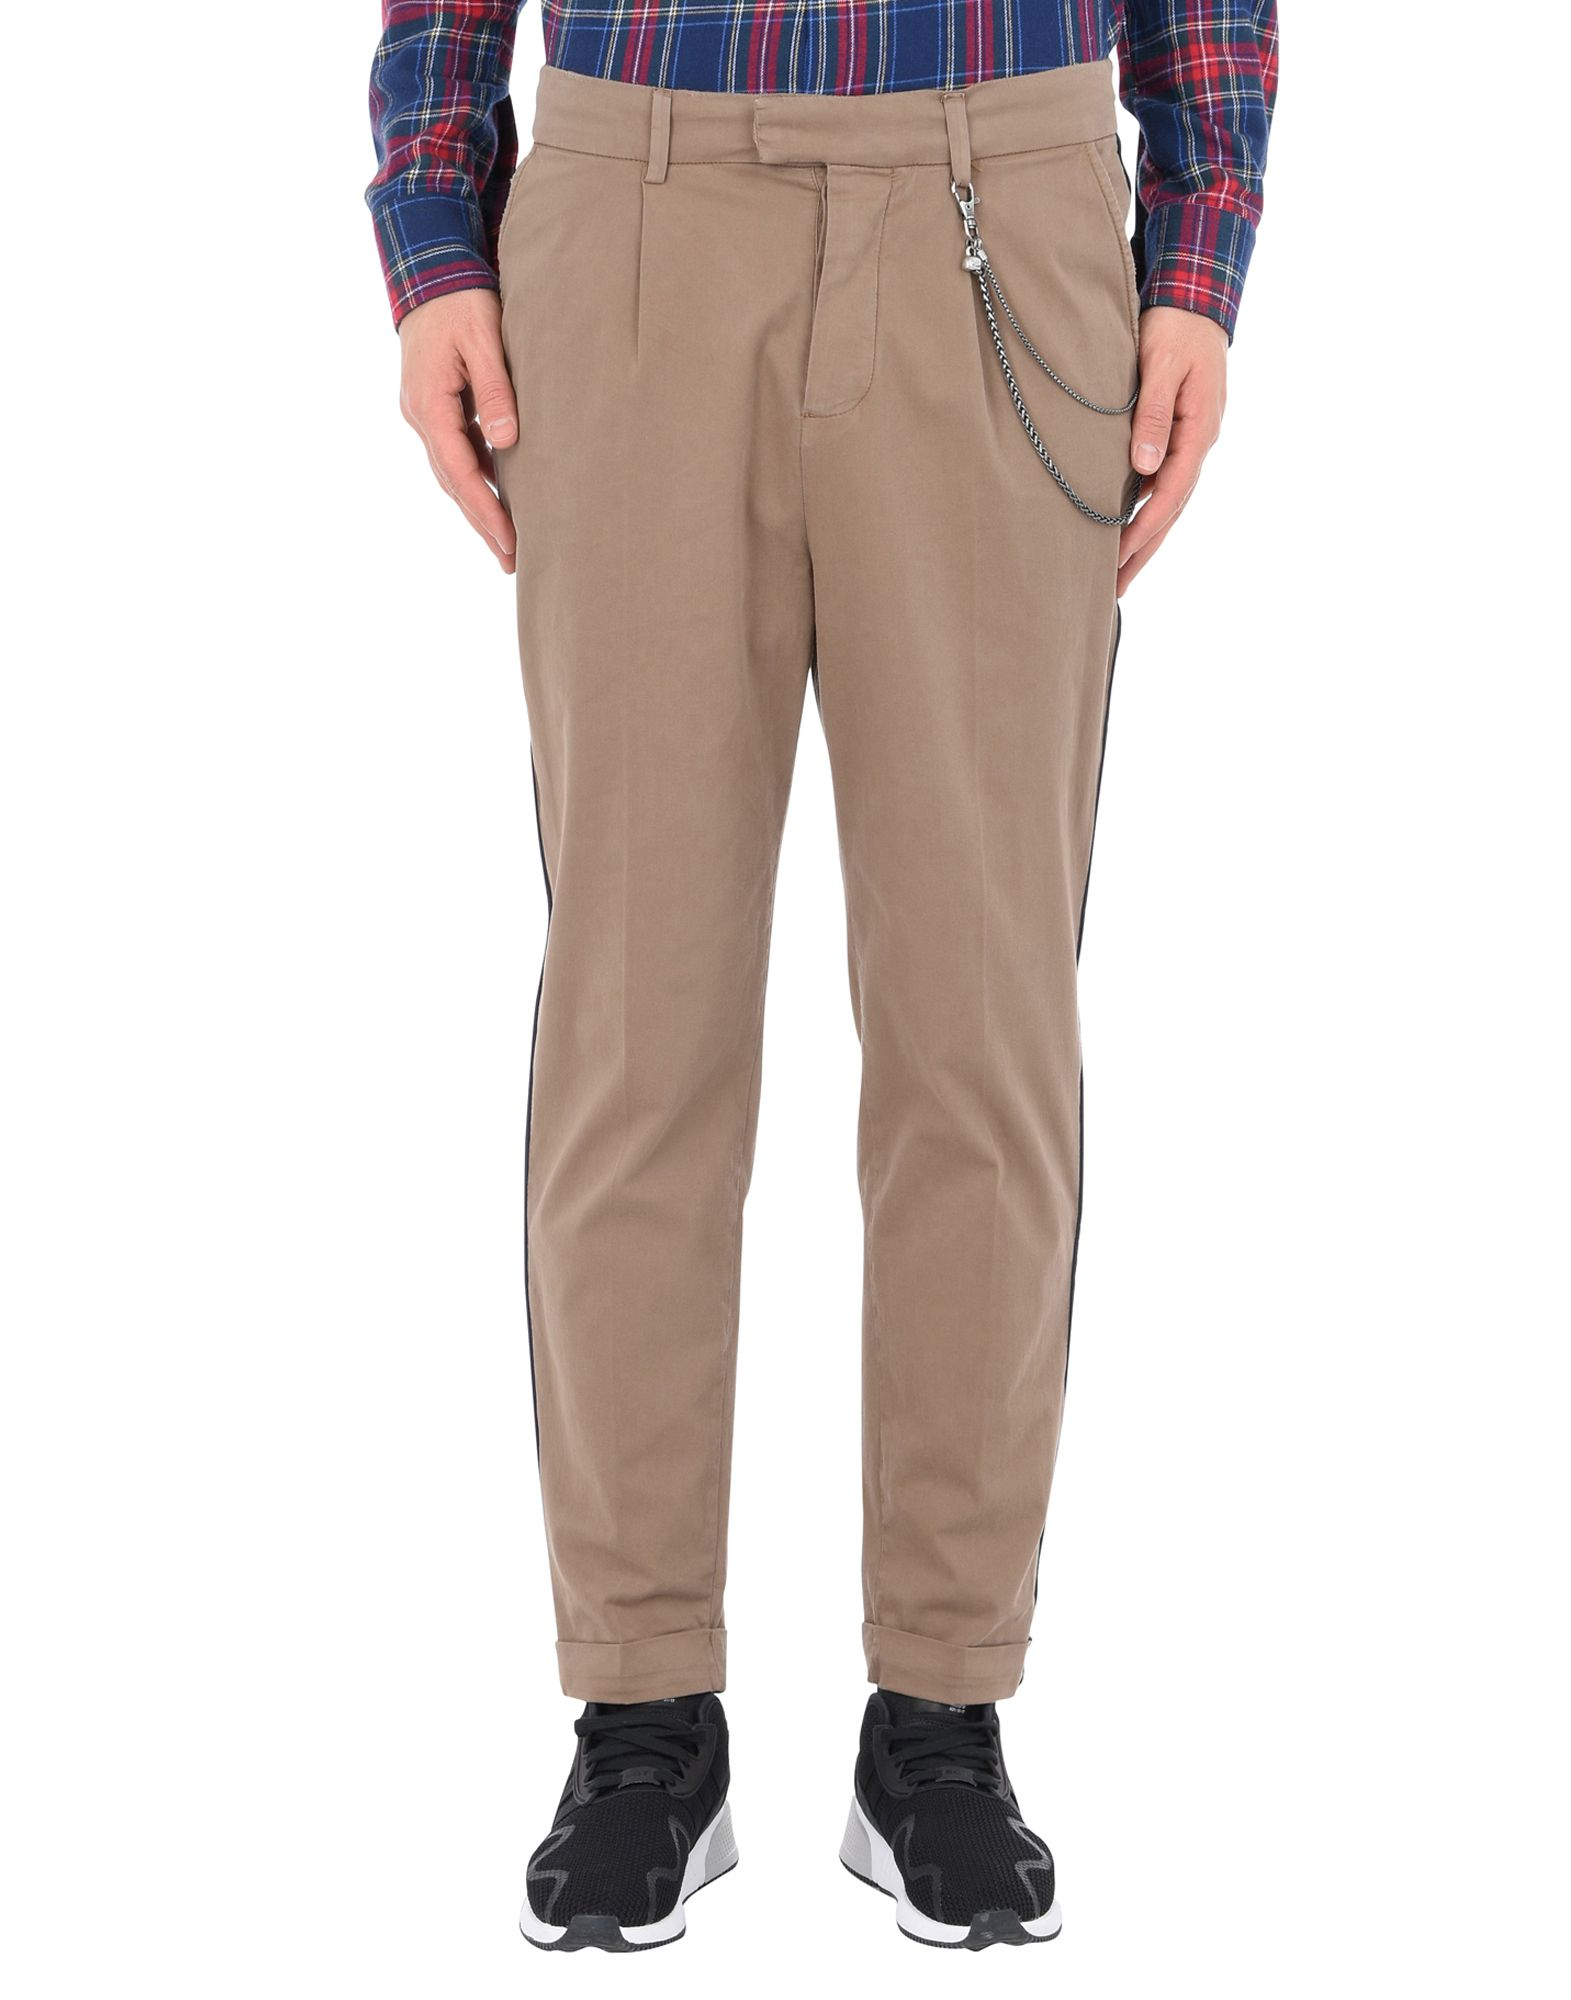 Chinos The Kooples Coloured Chinos - Donna - Acquista online su